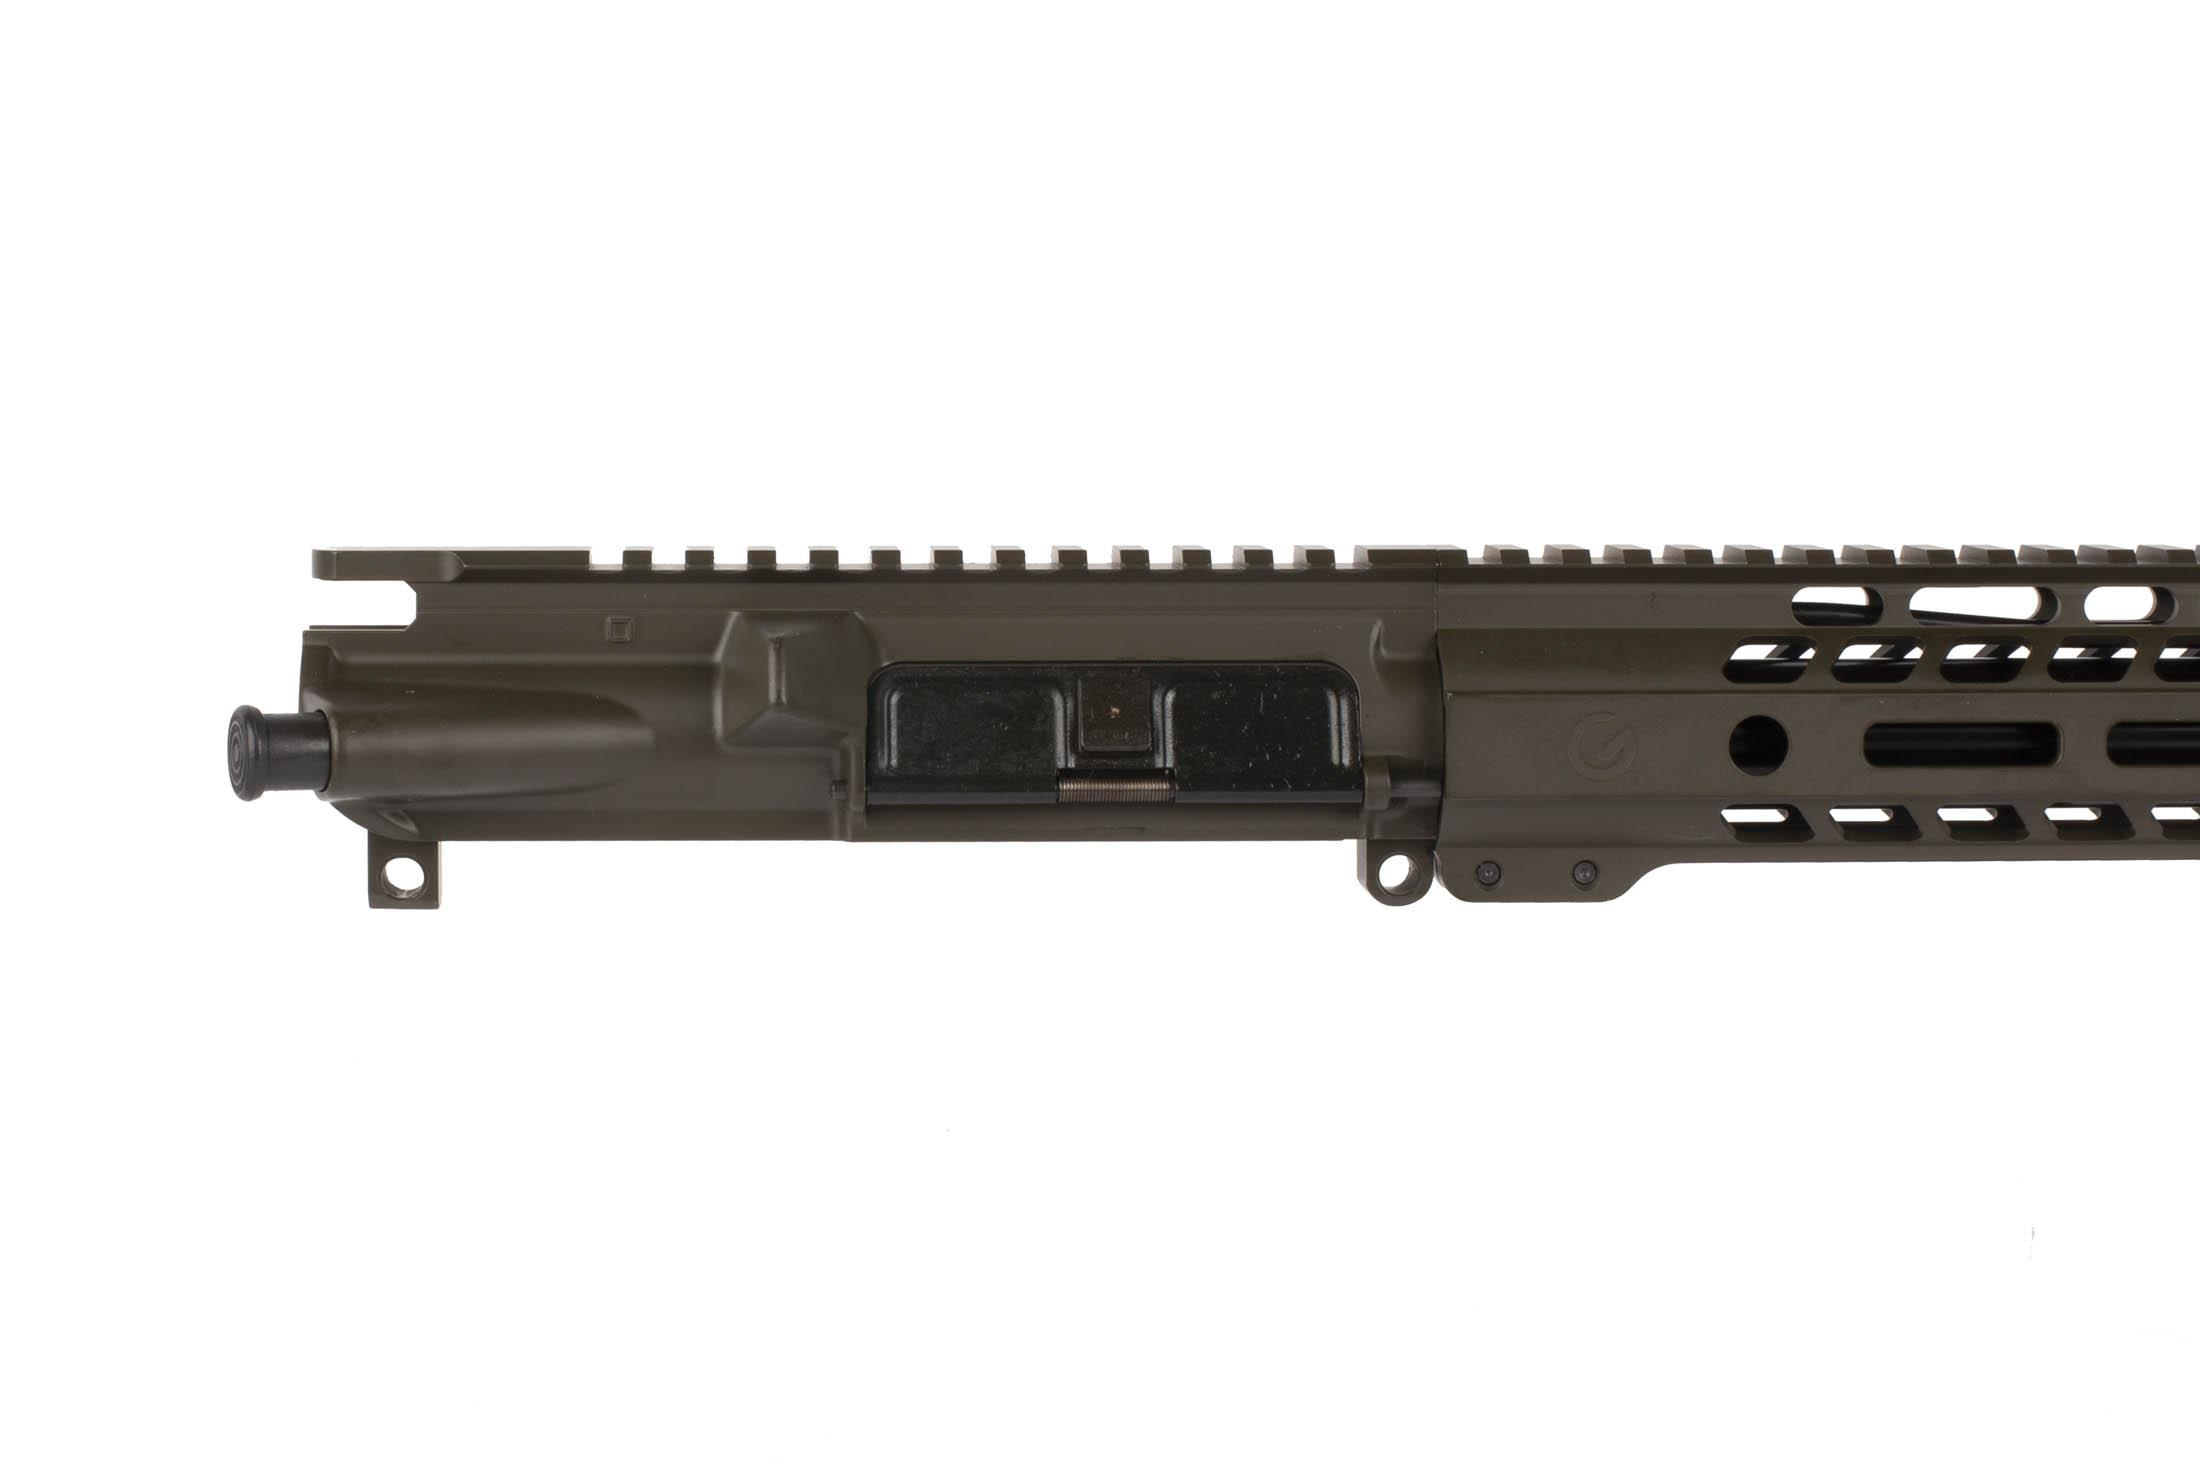 This Ghost Firearms 24 6.5 Grendel 1:8 Elite Rifle Length Barreled Upper is available in Olive Drab Green